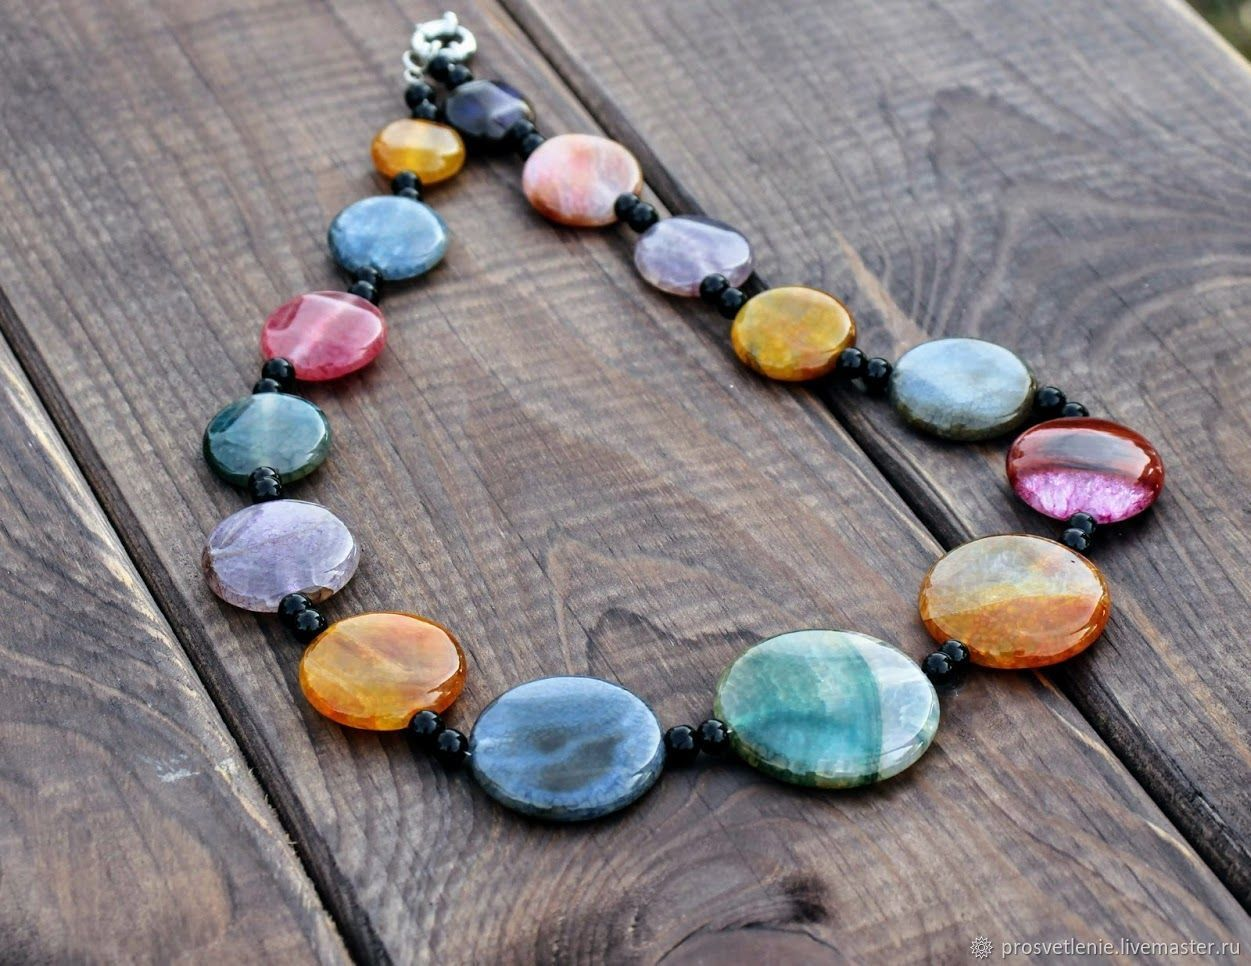 Bright necklace made of natural stones. Decoration Svetlana Boiko Voronezh. Necklace handmade. Stylish necklace decoration gift. Massive necklace with natural stone agate. NECKLACE of large stones